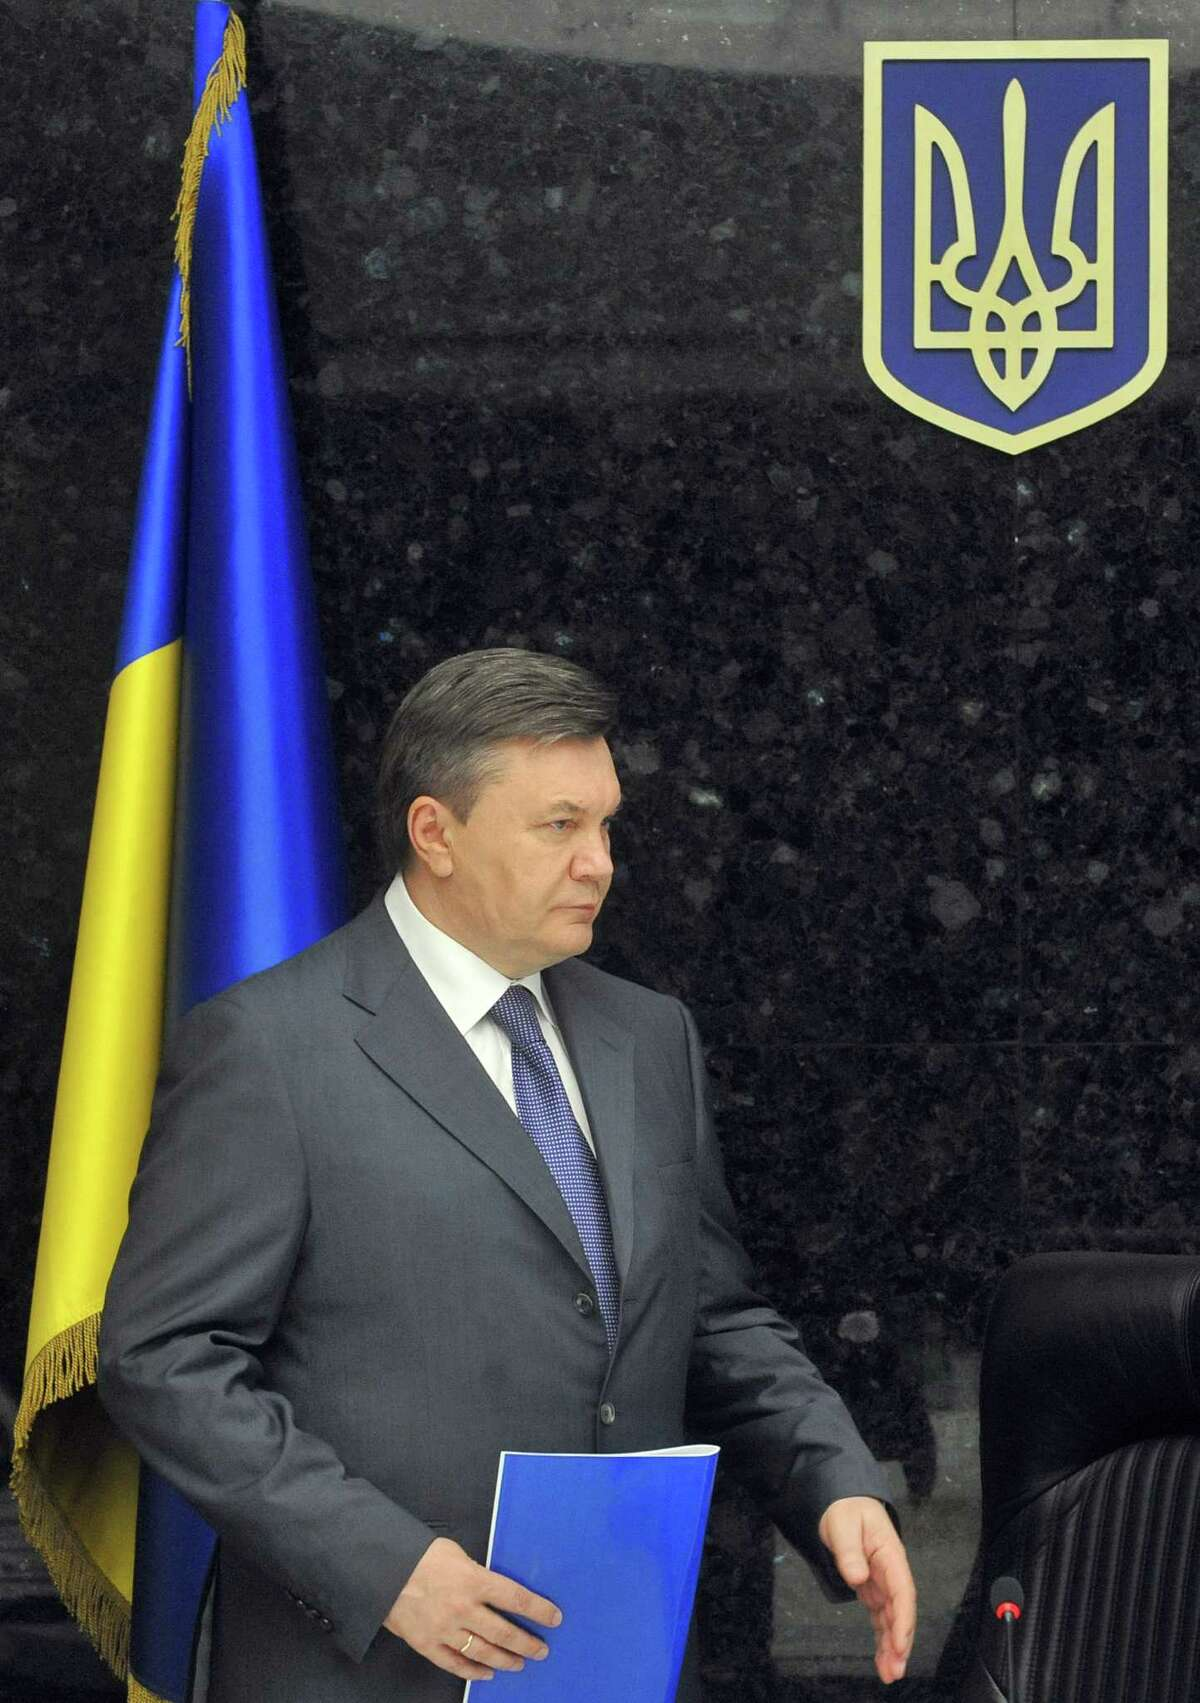 Ukrainian President Viktor Yanukovych arrives to a coordinating headquarter meeting in Dnipropetrovsk, eastern Ukraine, on April 28, 2012. Four explosions went off in a busy area of central Dnipropetrovsk on April 27, wounding 26, the emergency situations ministry said today. The authorities gave conflicting totals, however, with the health ministry saying 30 were wounded. The first bomb, hidden in a rubbish bin, exploded shortly before noon on April 27, followed by three more blasts over the next hour, all in the same busy part of the city on the Dniepr River. AFP PHOTO / STRINGERSTR/AFP/GettyImages